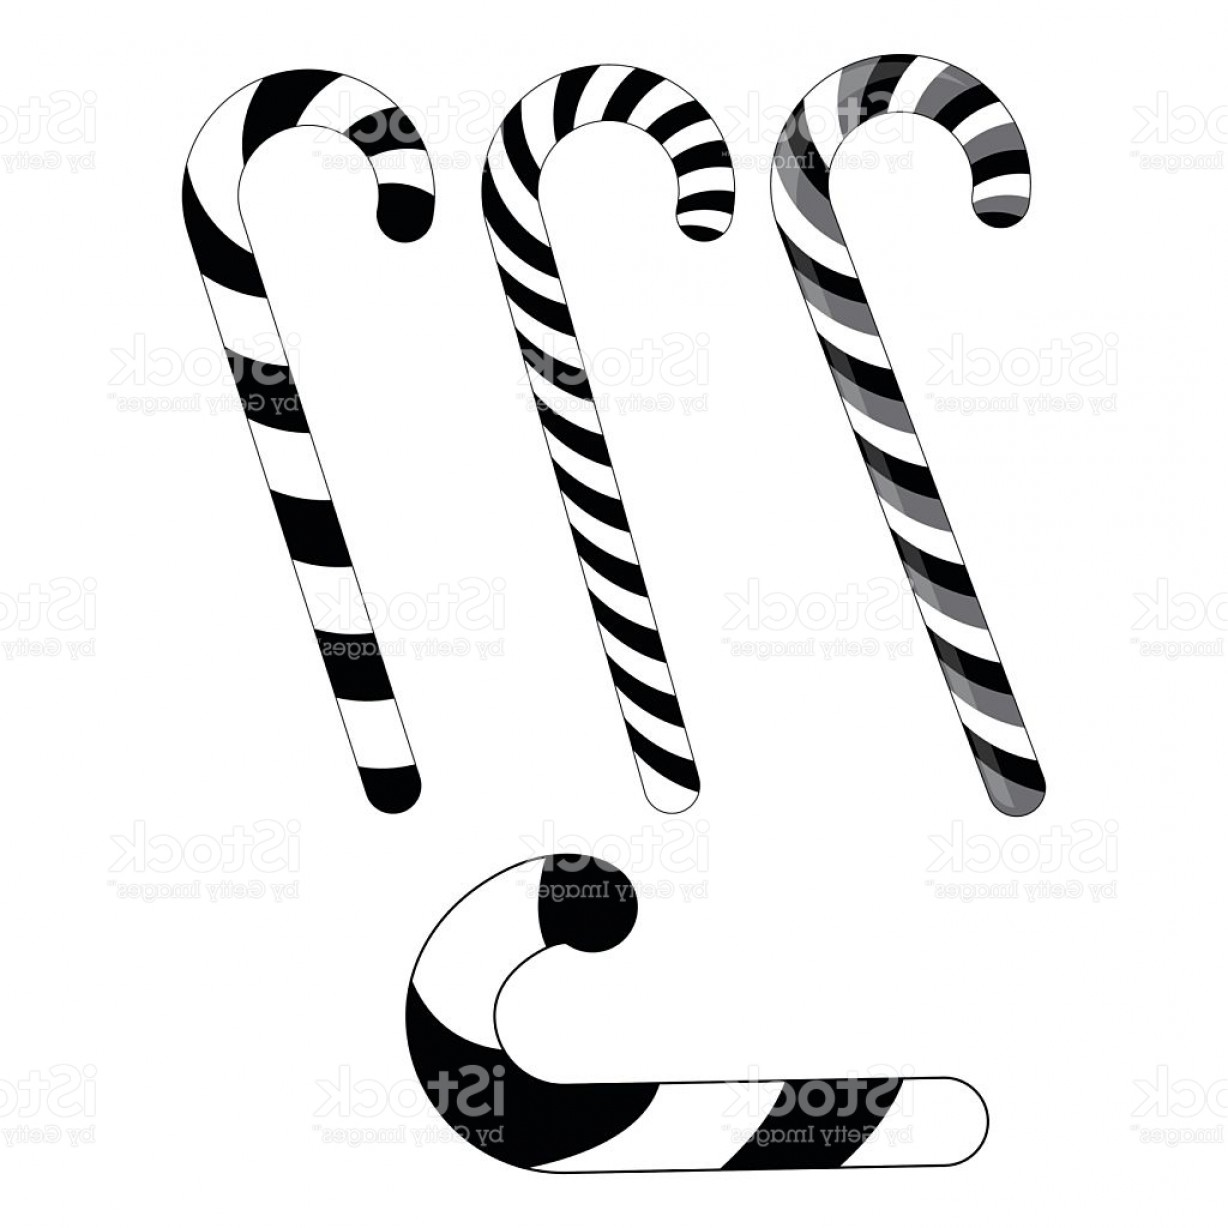 Black And White Candy Vector: Candy Cane Striped Silhouette For Christmas Gm